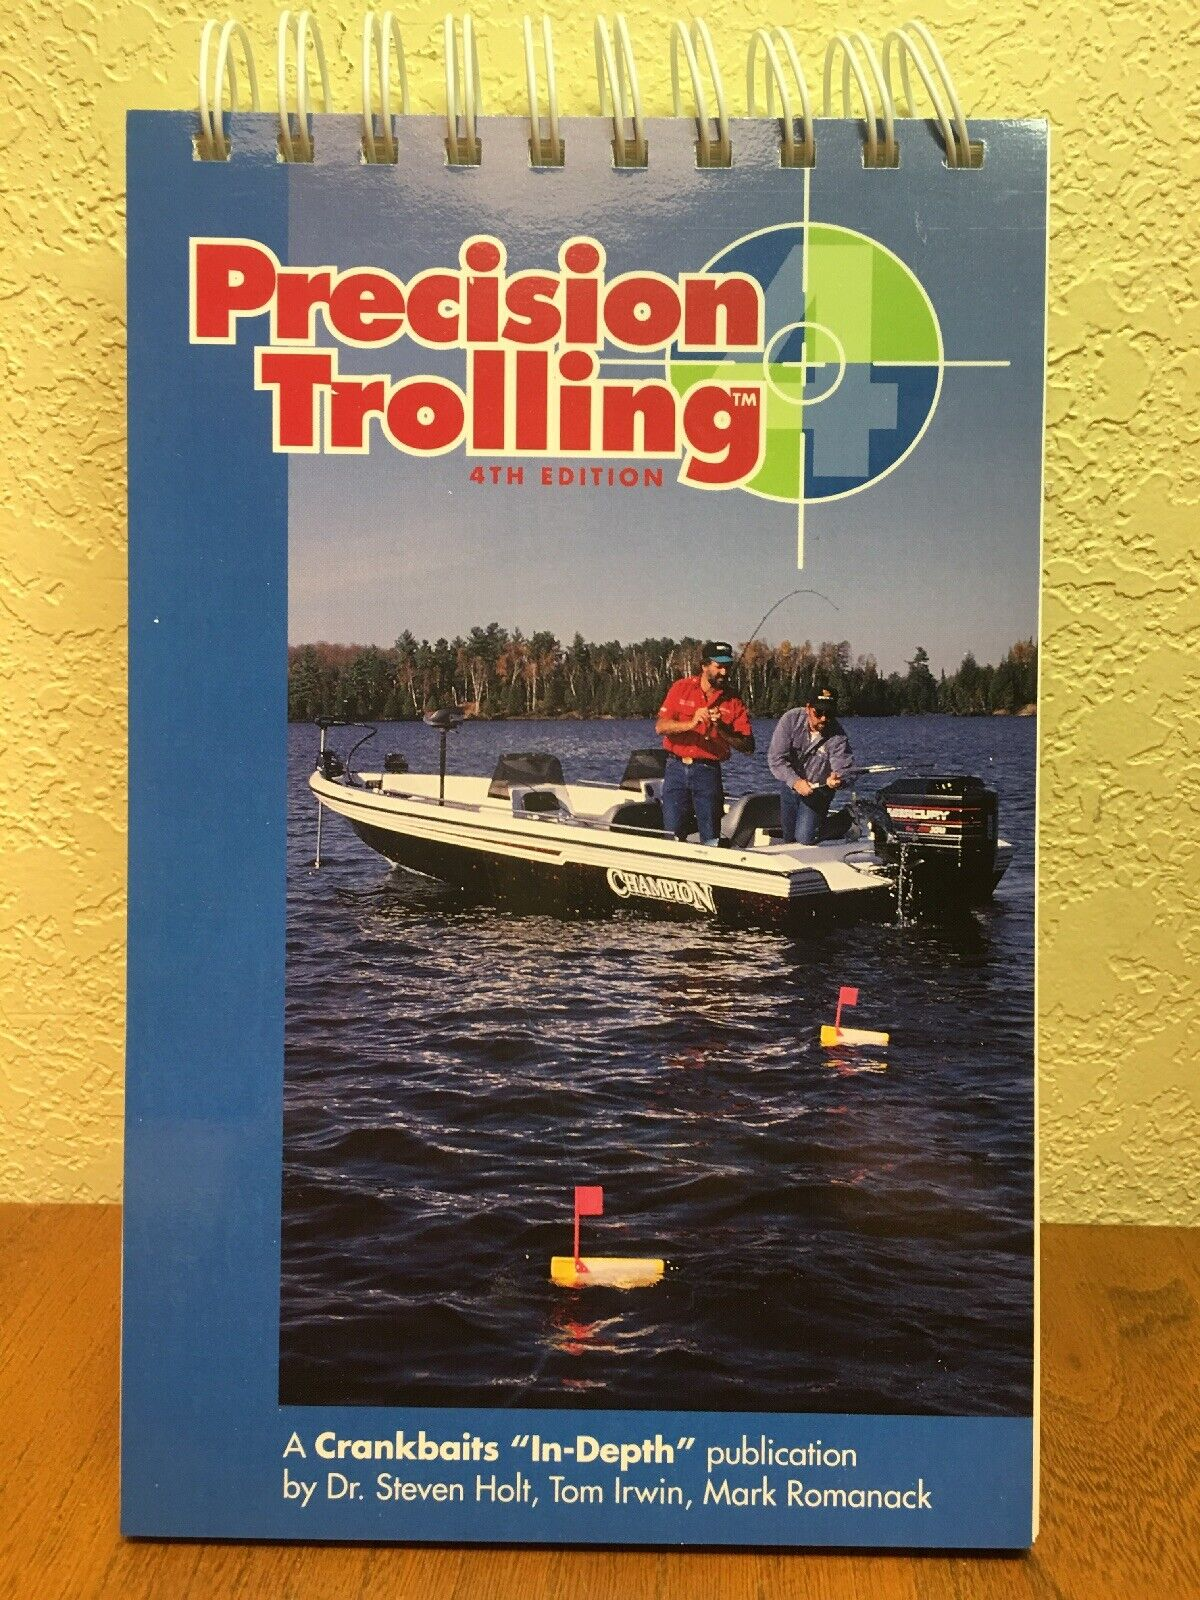 PRECISION TROLLING 4TH EDITION Fishing Book Crankbaits In-depth HOLT Romanack